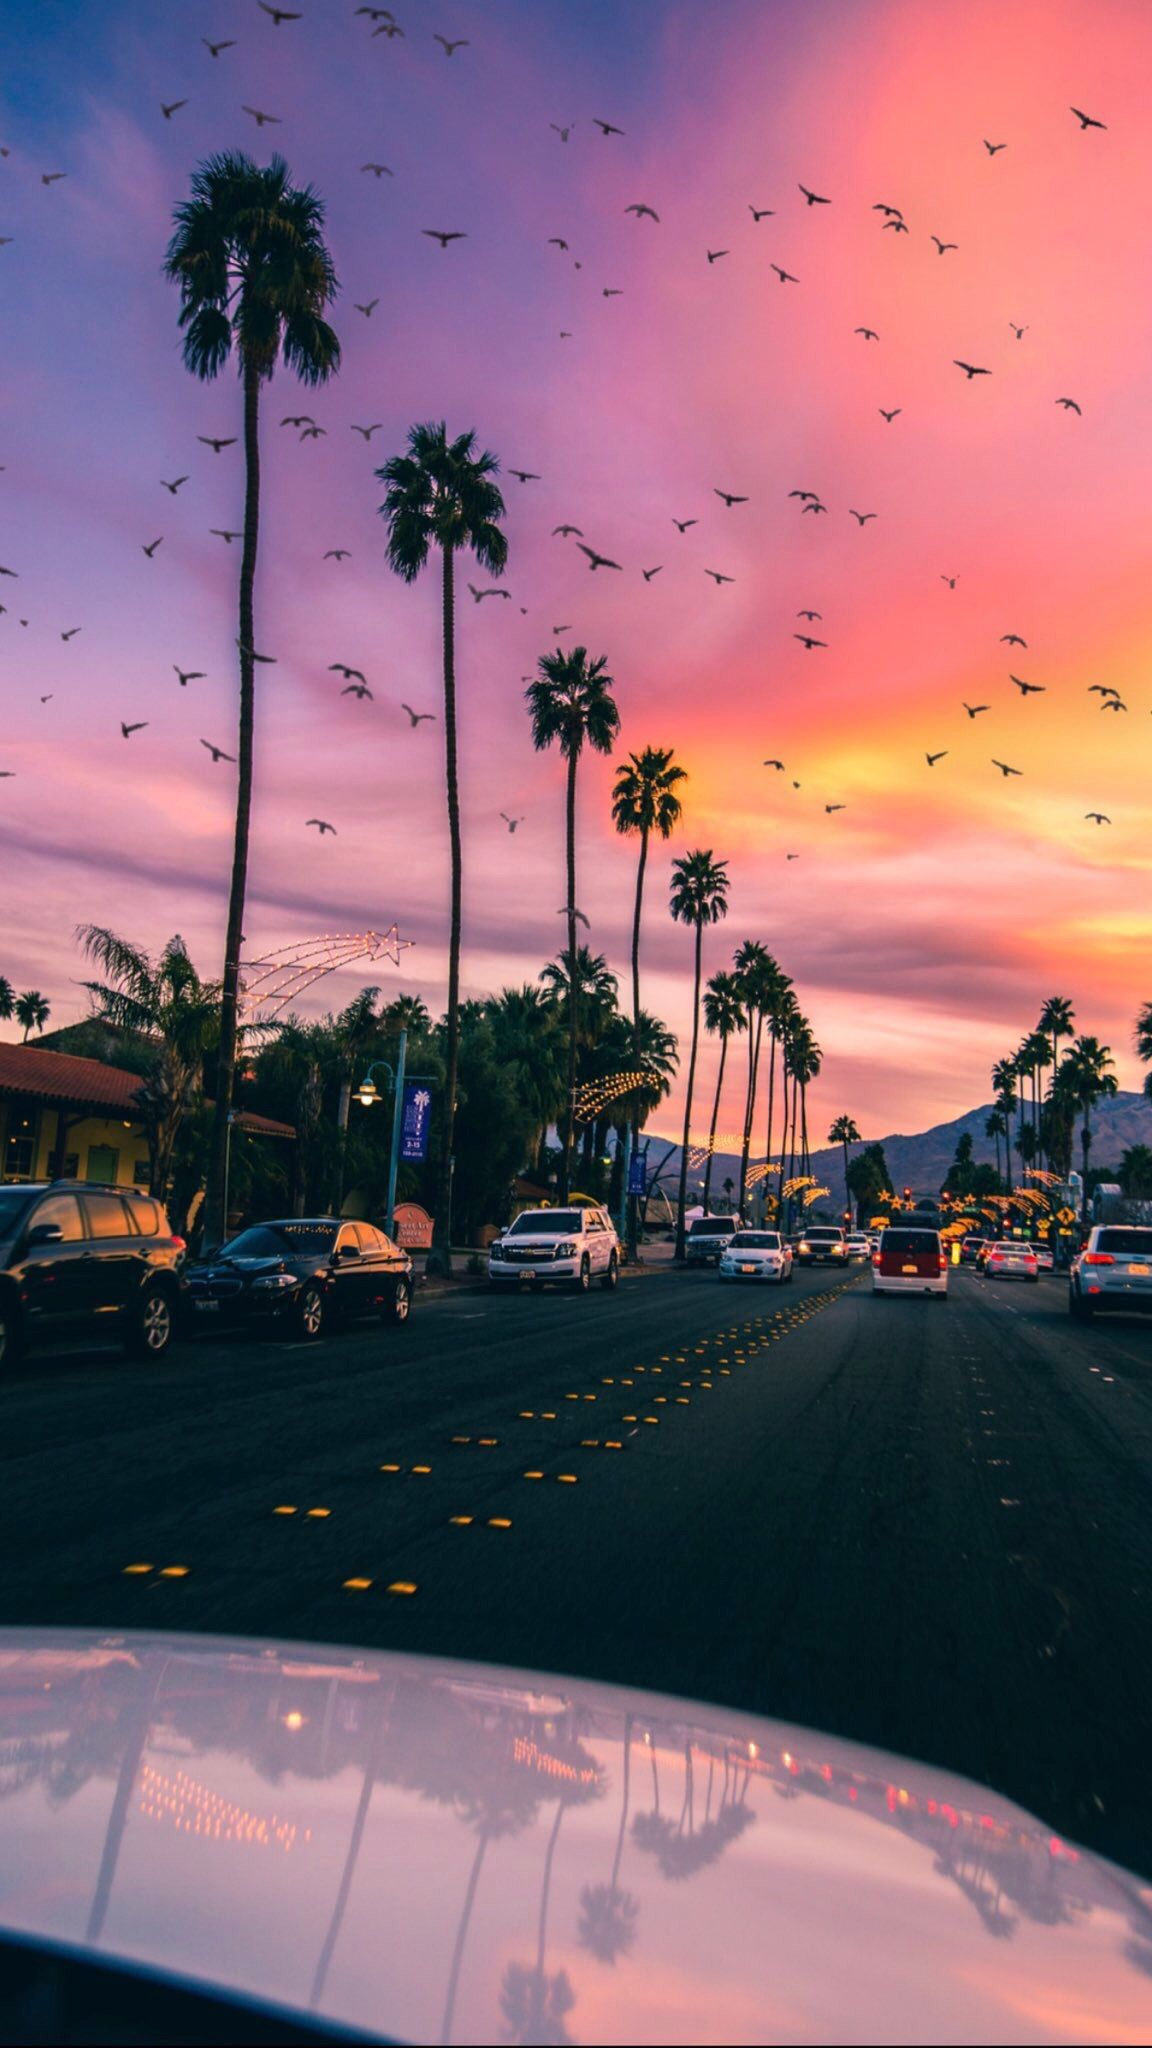 Vsco I Never Knew How Amazing Life Could Be Until I Moved To Los Angeles The Closest Thing Wallpaper Iphone Summer Beautiful Nature Wallpaper Sky Aesthetic